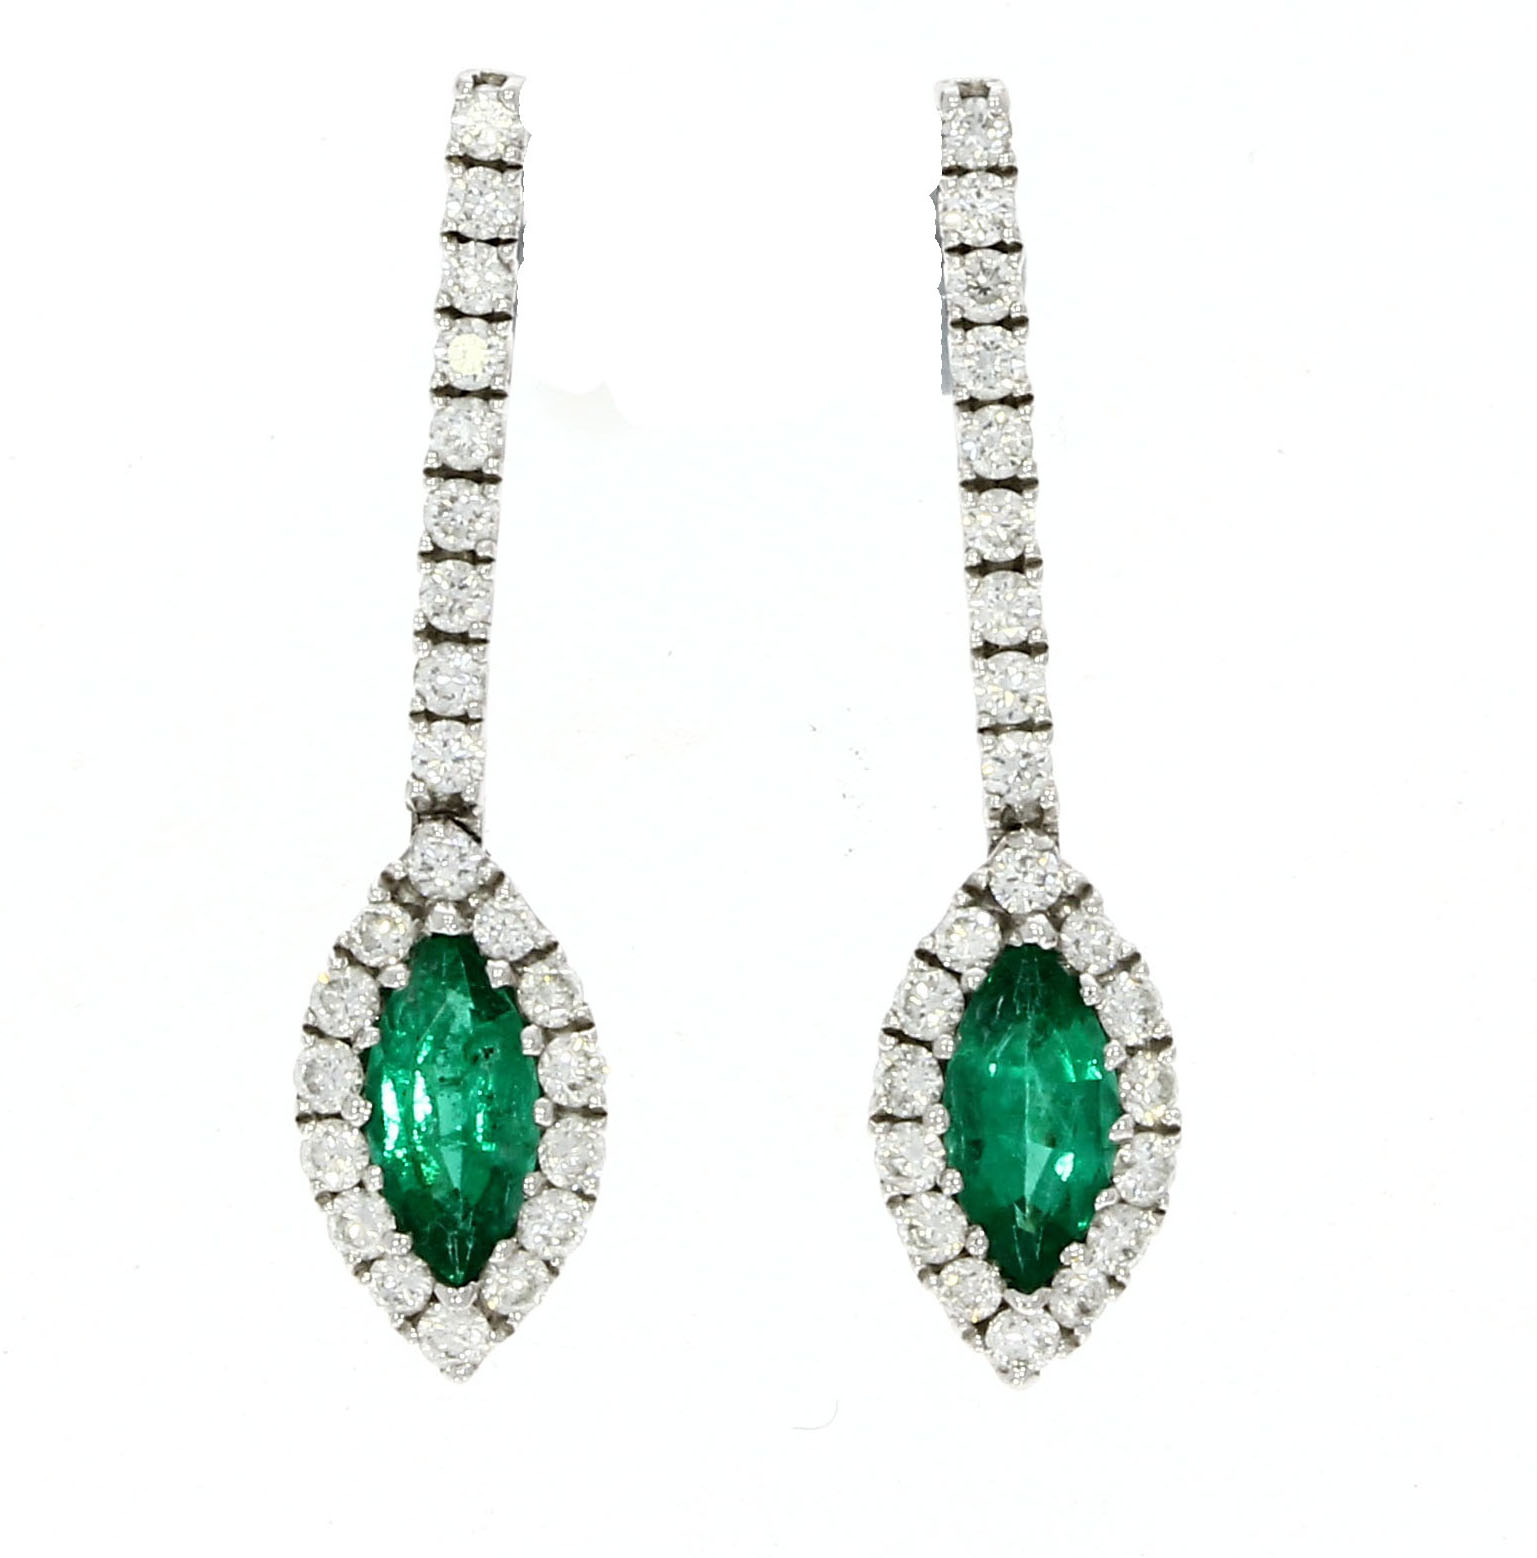 Star of the Month – May 2018: Emerald & diamond earrings bring delight